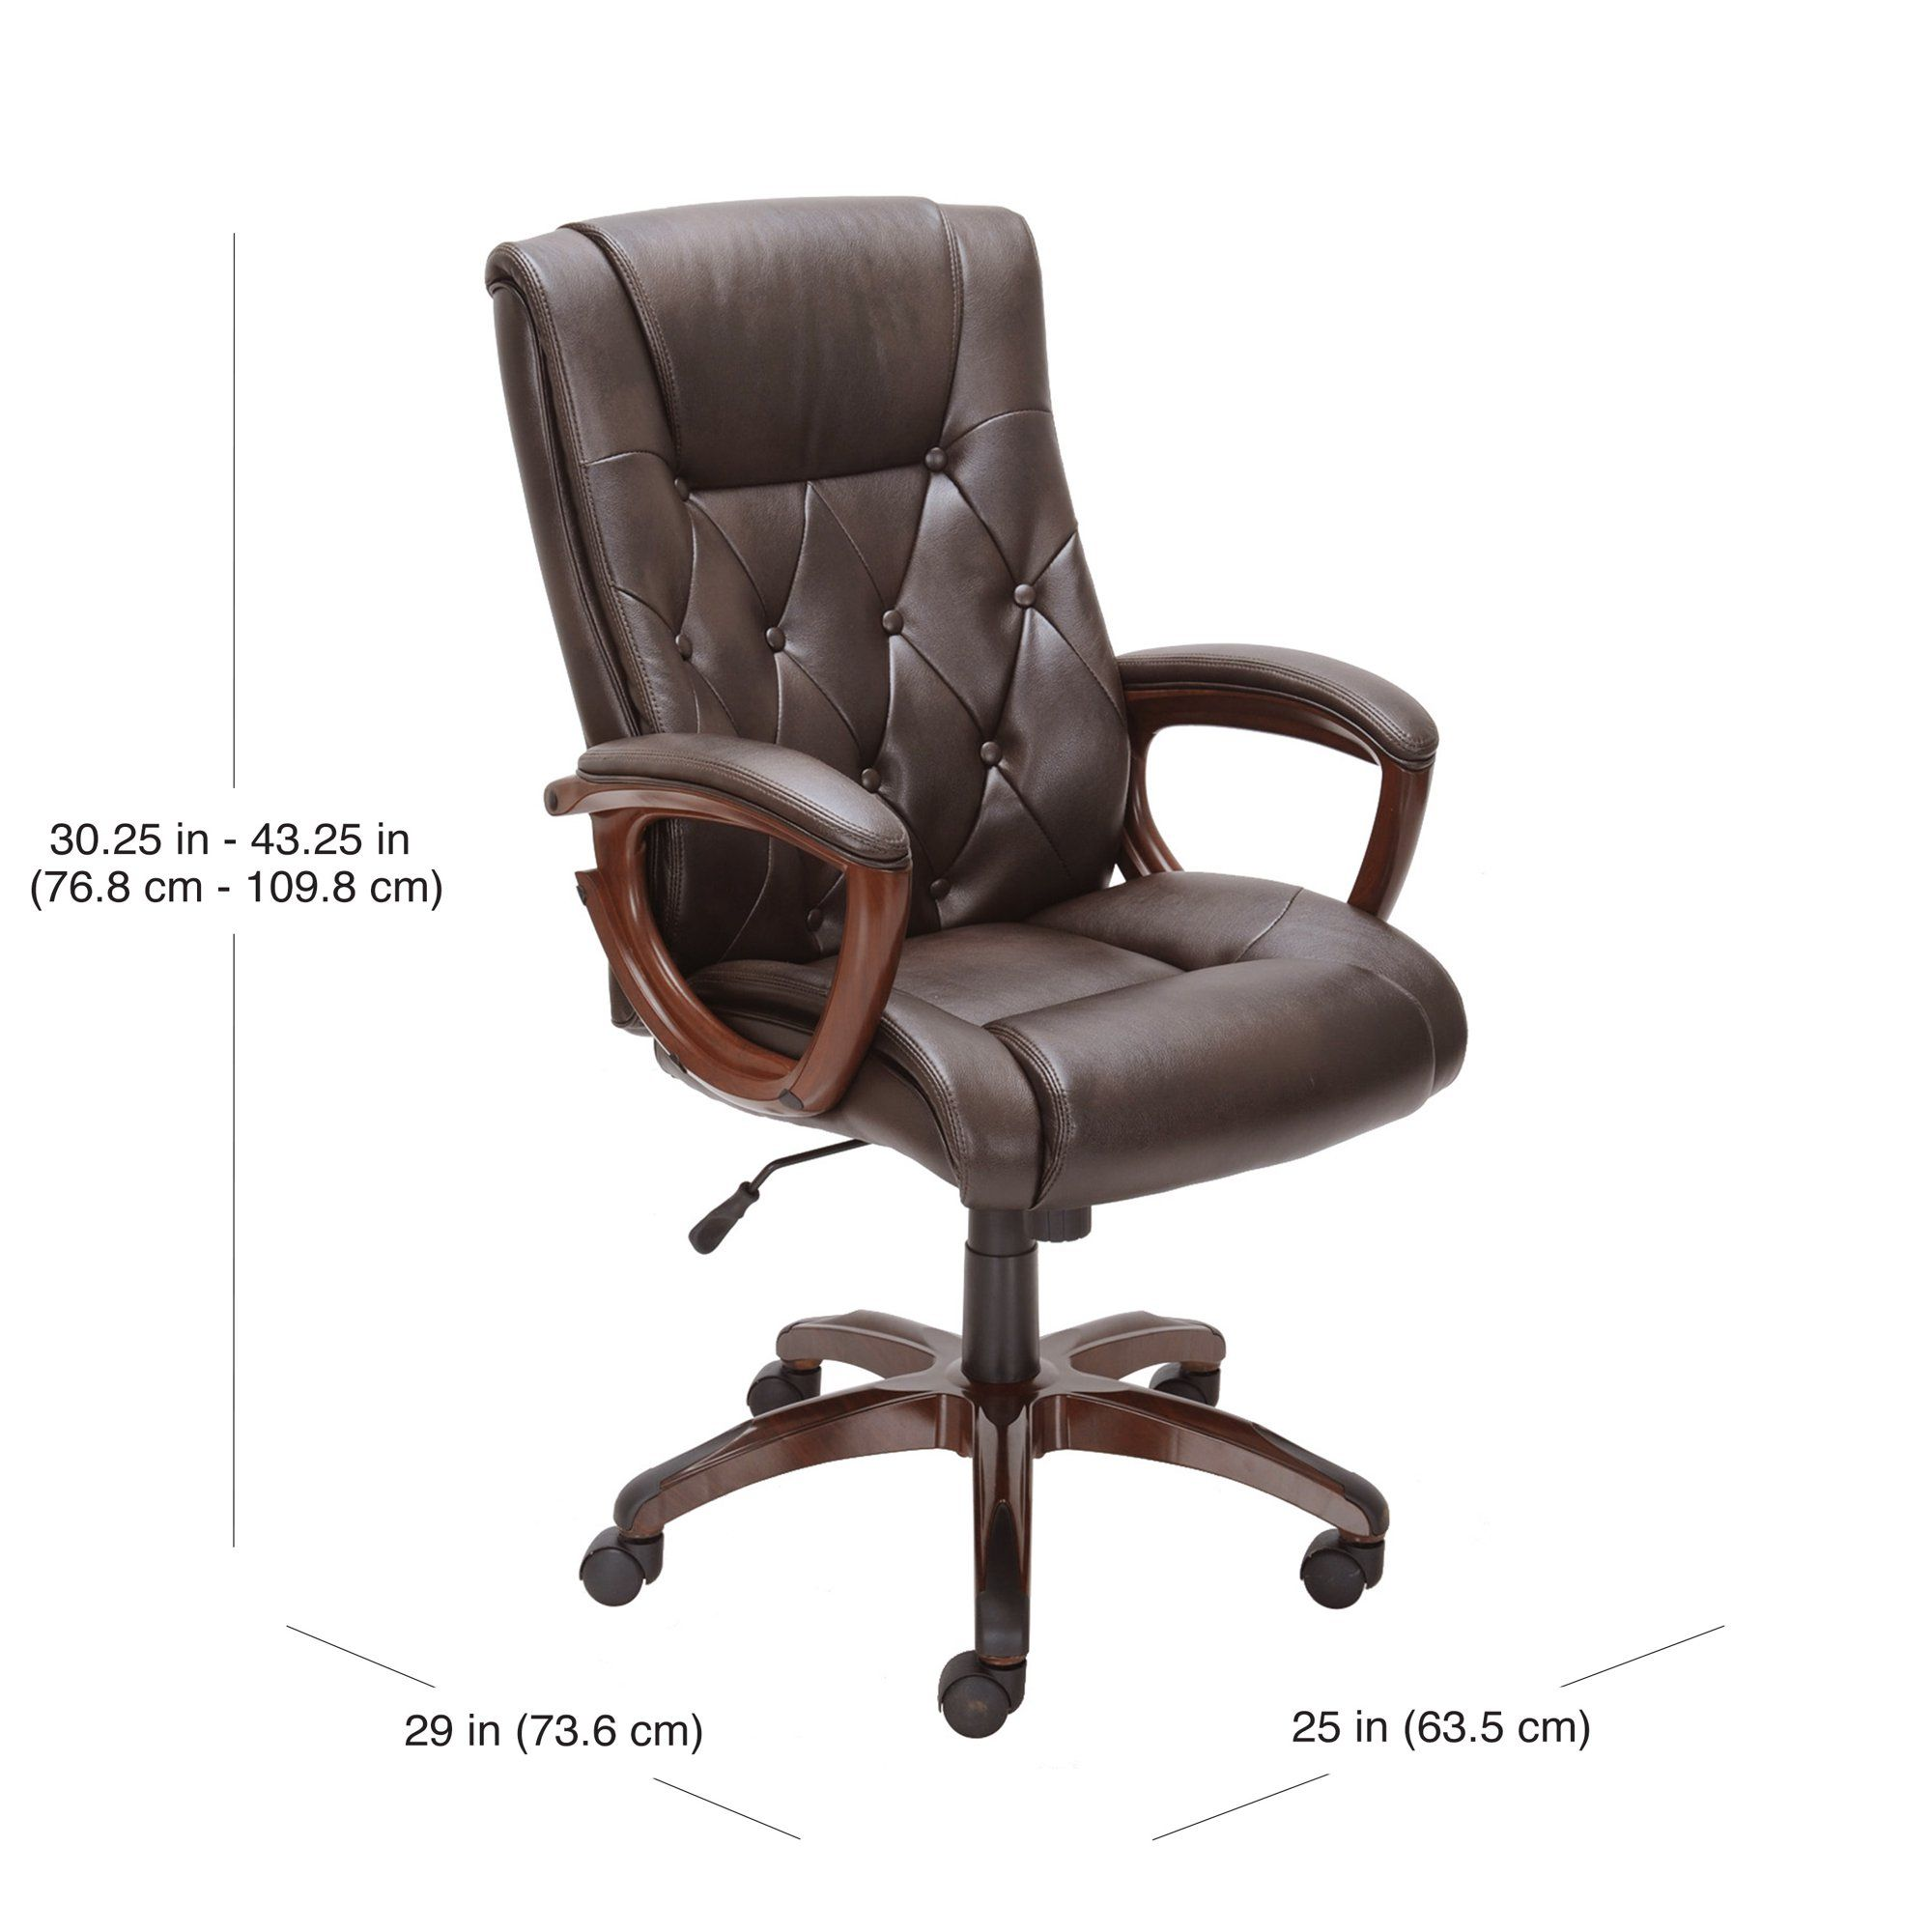 989b21ecfbd91226b5b76937ca54204c - Better Homes And Gardens Bonded Leather Office Chair